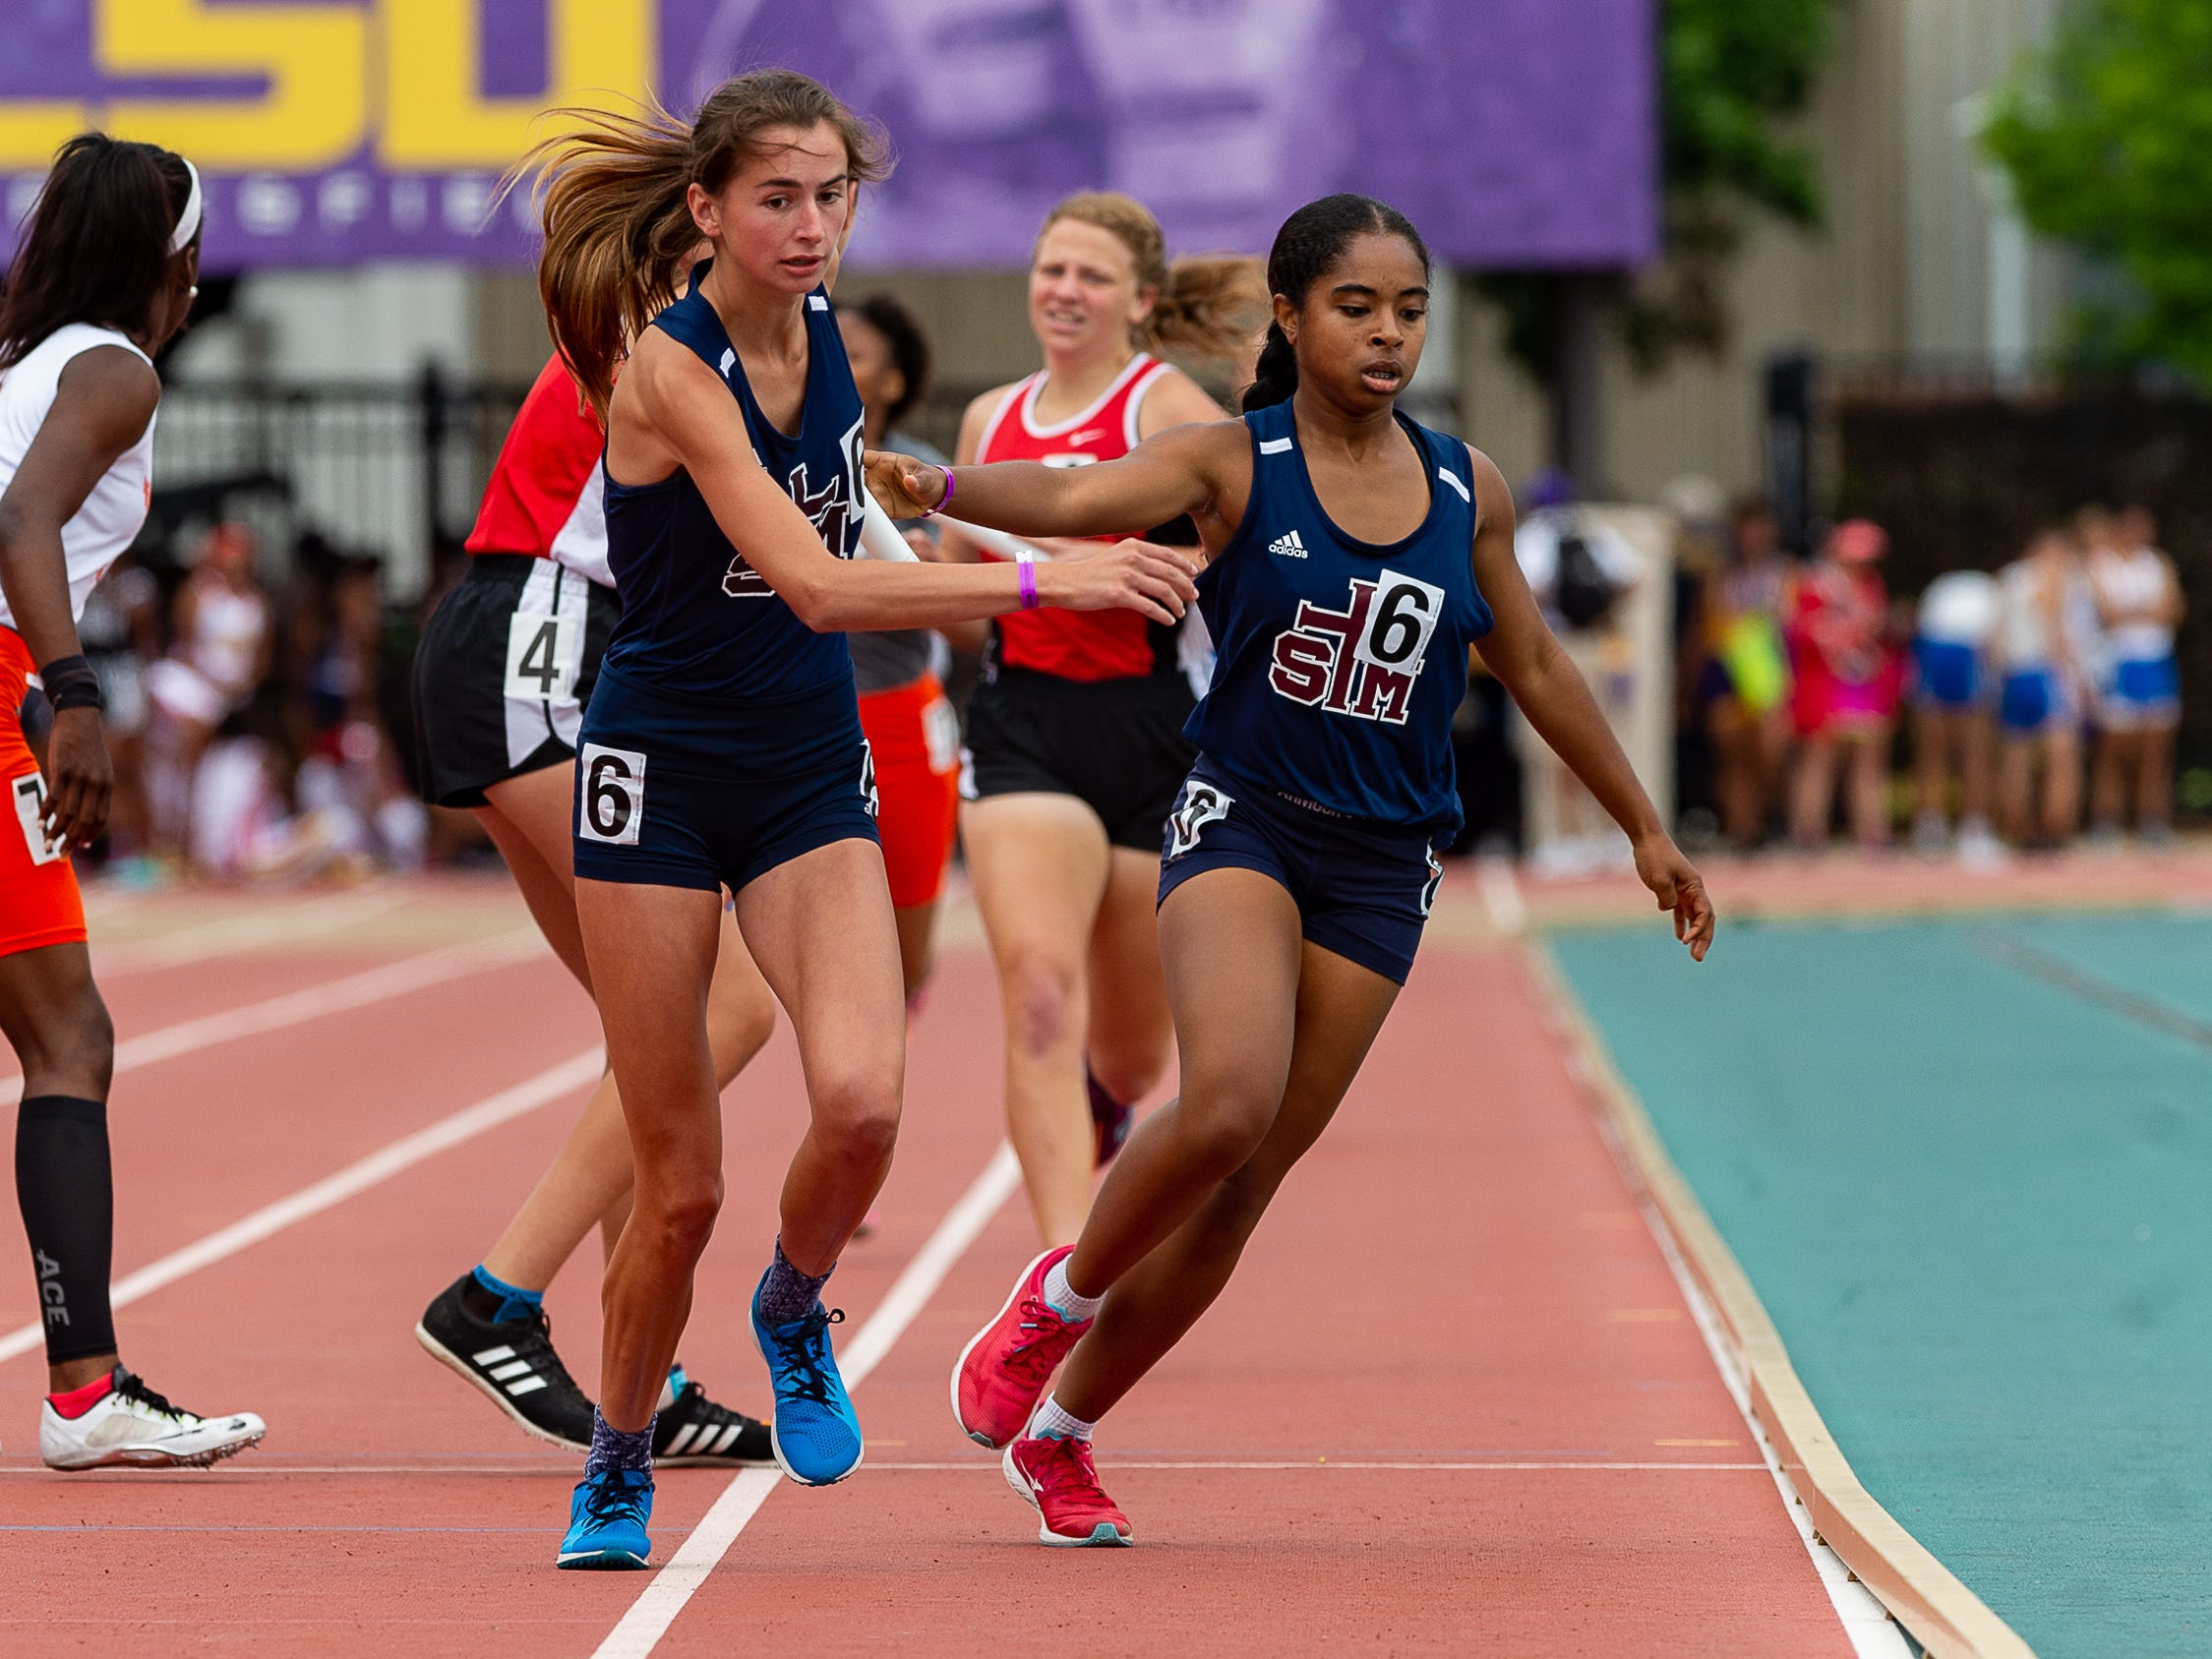 Mia Parker runs the second leg of the girls 4x800 relay at The LHSAA Sate Track Meet at Bernie Moore Track in Baton Rouge, LA. Saturday, May 4, 2019.